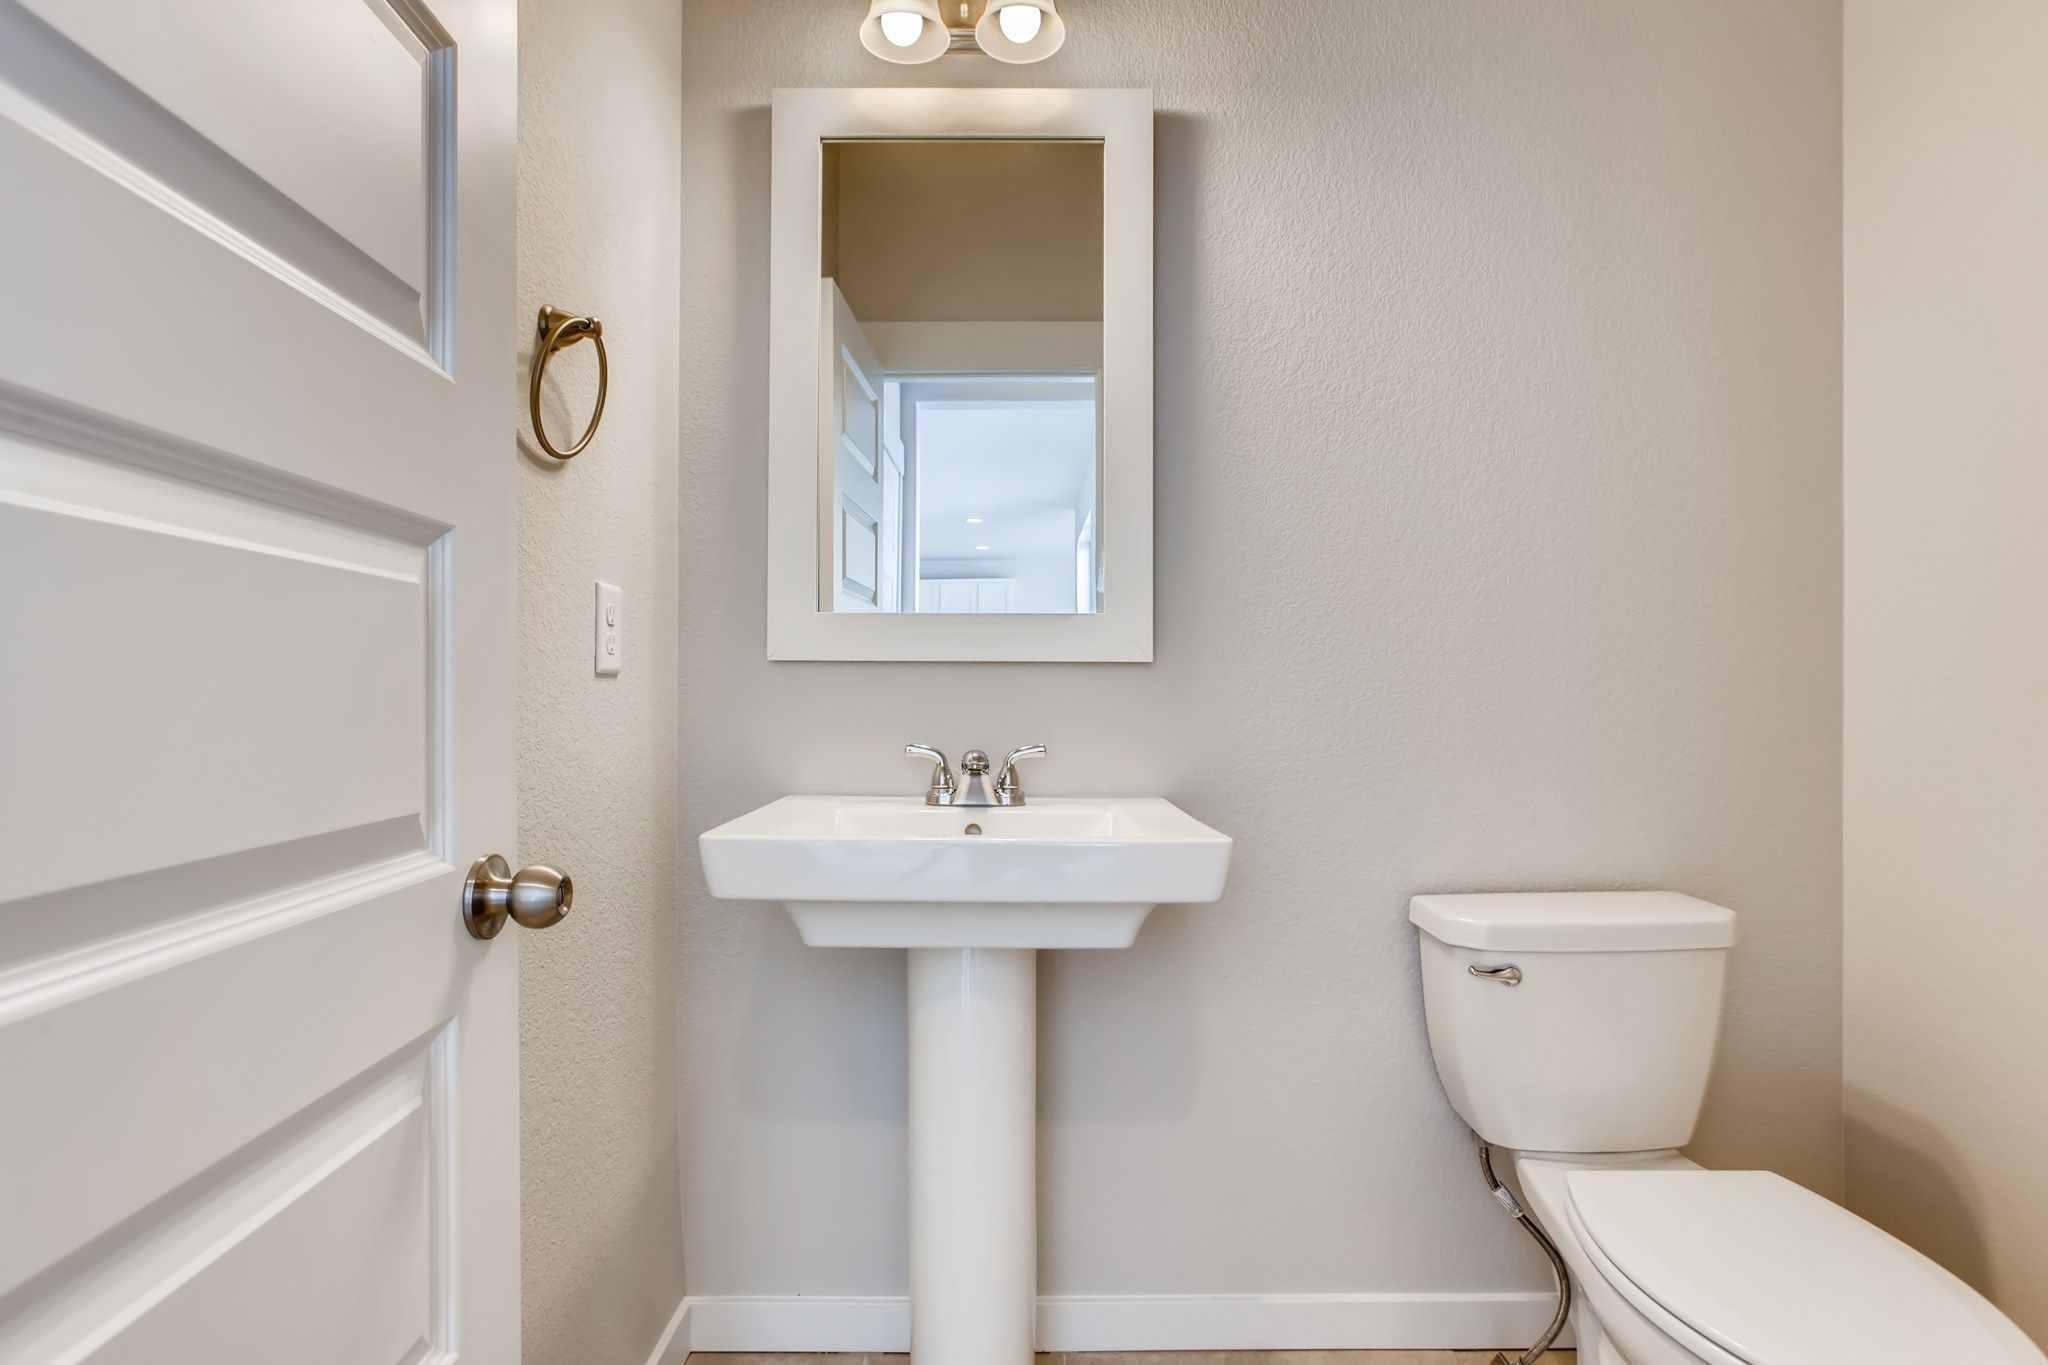 Bathroom featured in the Plan V419 By American Legend Homes in Fort Collins-Loveland, CO